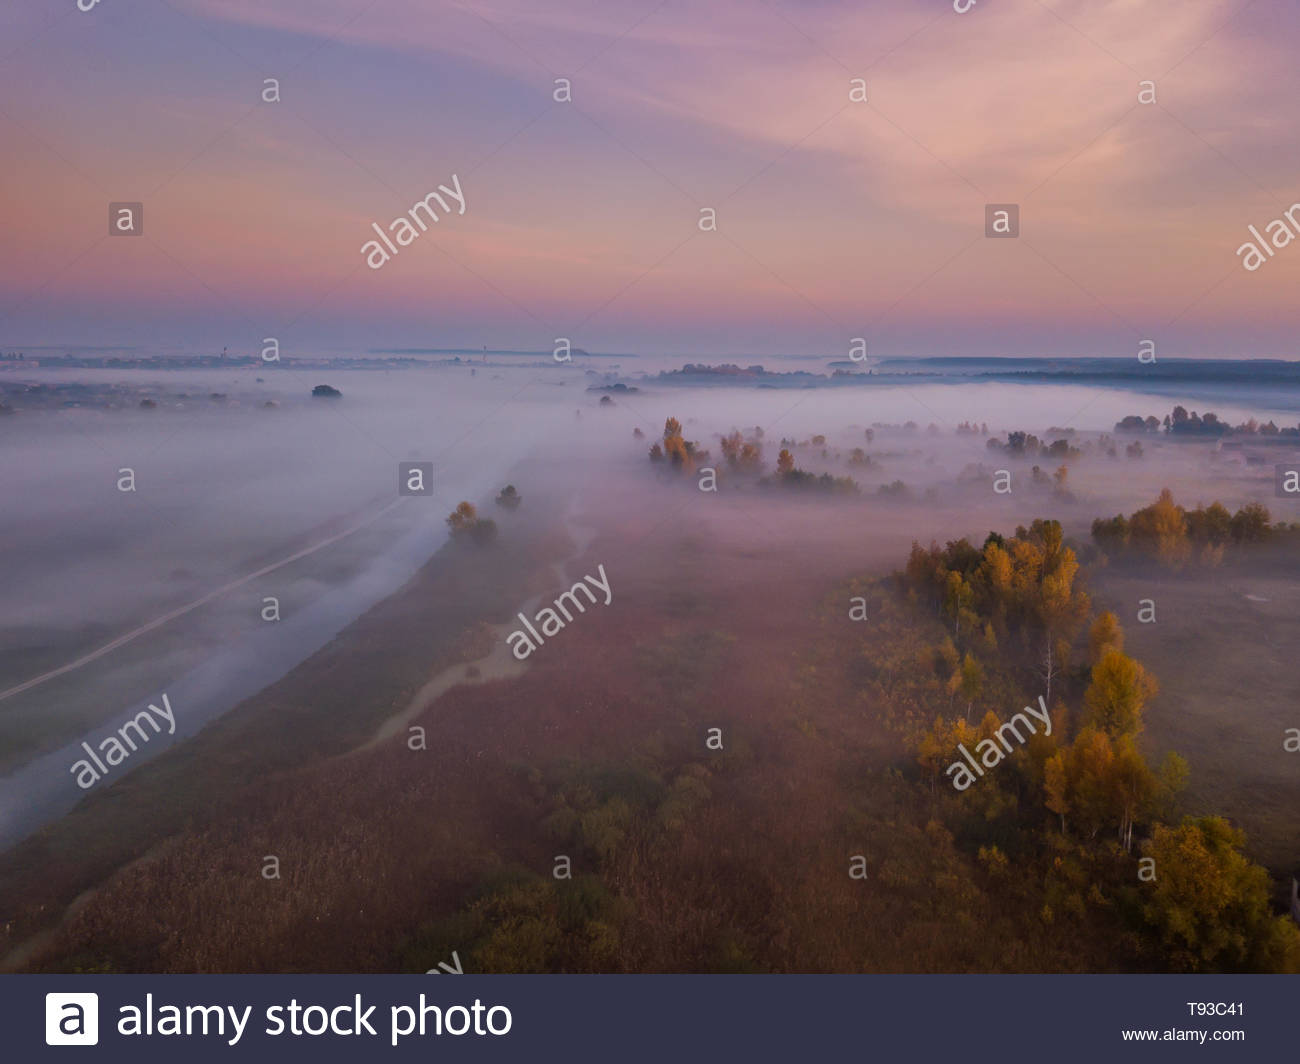 Forest in the fog at sunrise. View from drone. - Stock Image